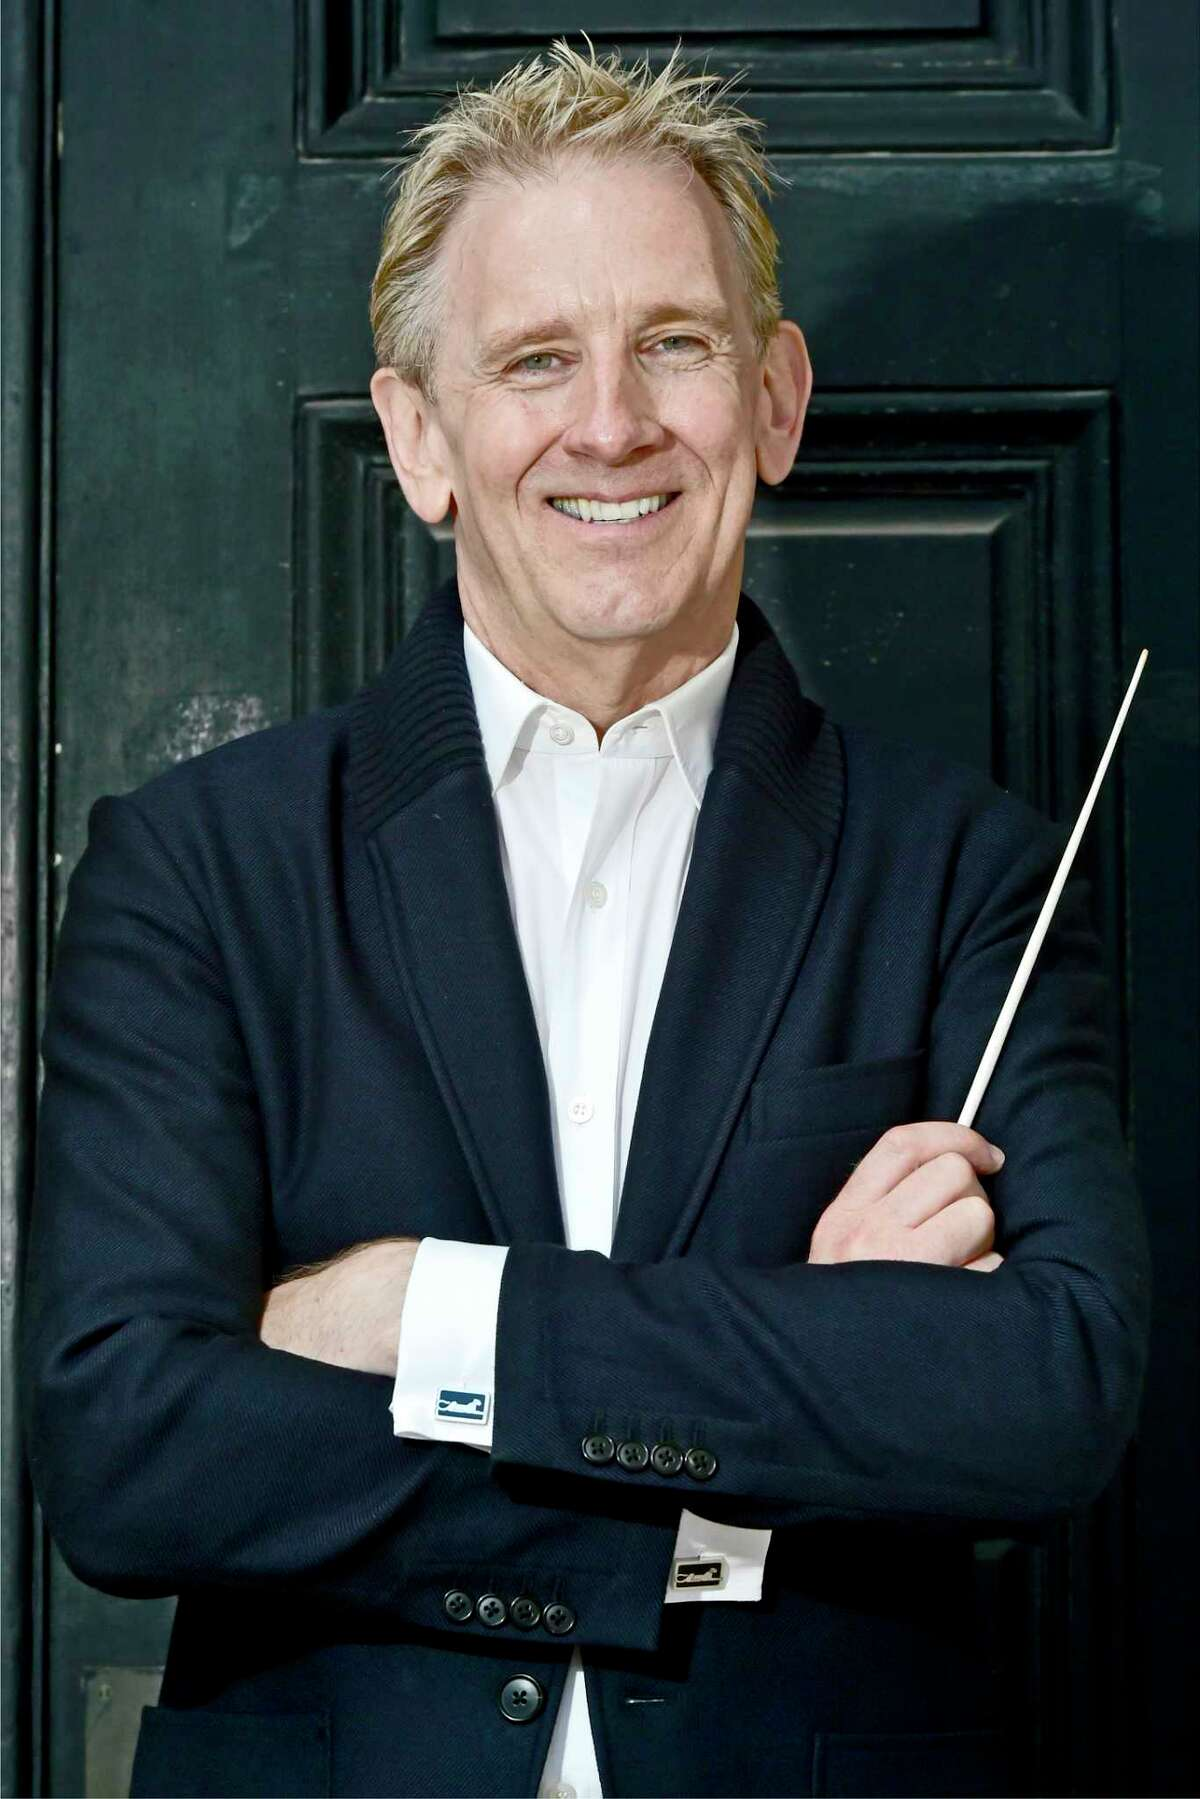 New Haven, Connecticut - Friday, September 13, 2019: Alasdair Neale, music director (CQ) and conductor of the New Haven Symphony Orchestraoutside Woolsey Hall at Yale University.